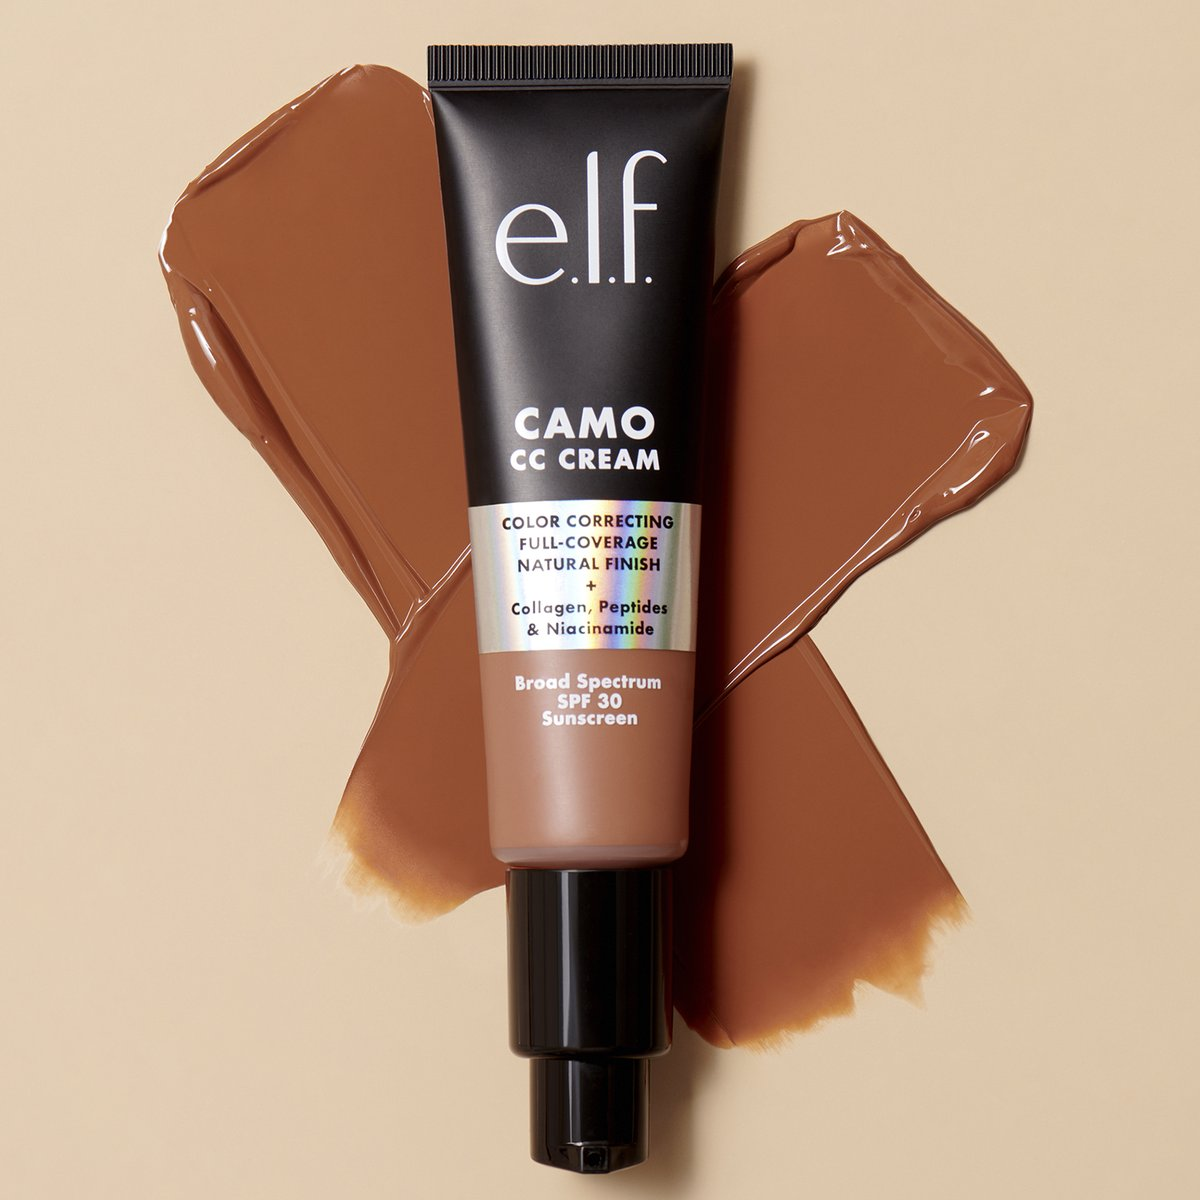 E.L.F. Cosmetics Added A Full-Coverage CC Cream To Its Beloved Camo Range